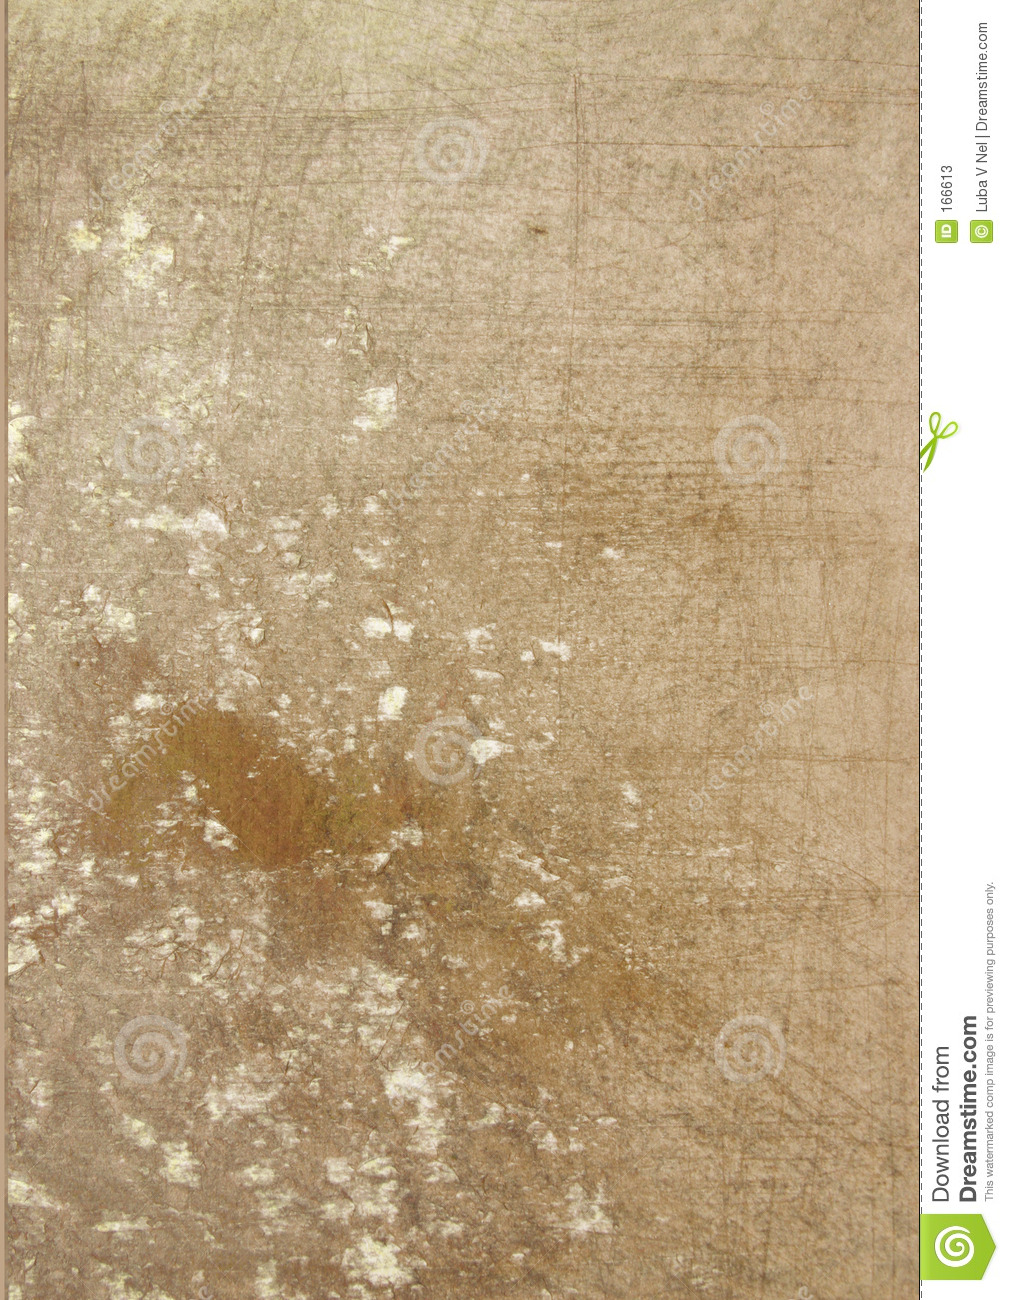 grunge brown stained surface